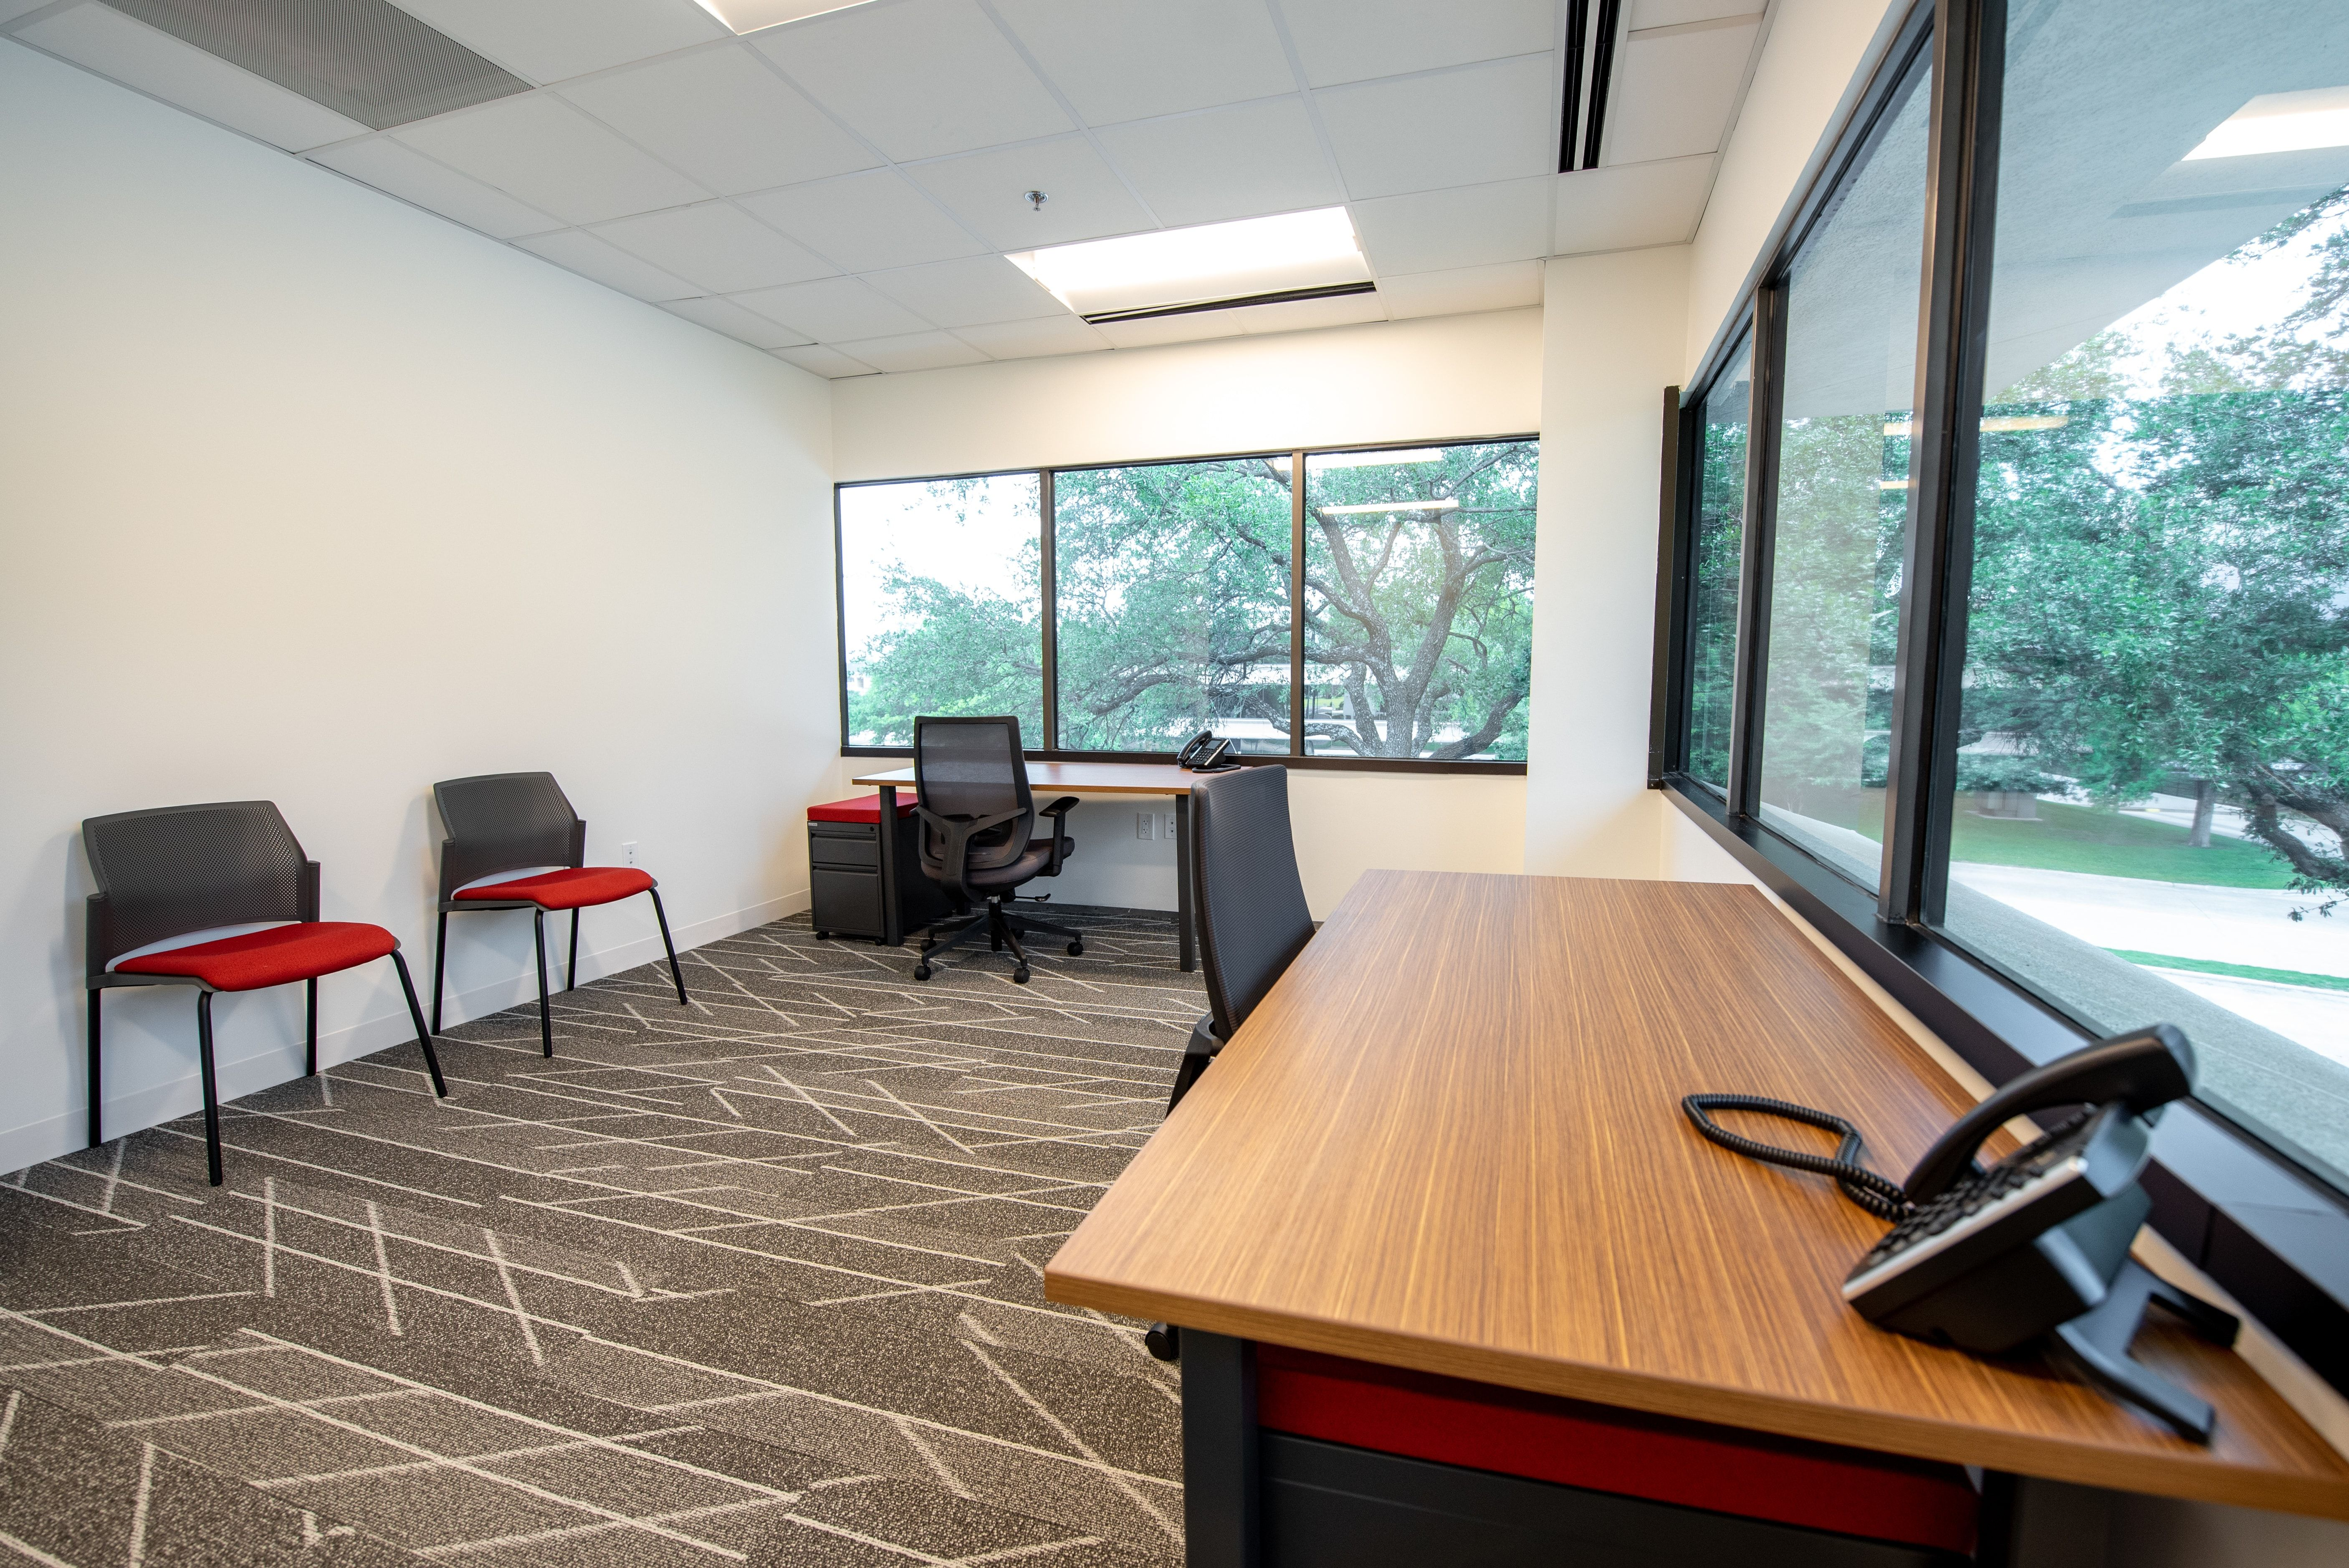 Come Take A Look At Our Office Spaces In Dallas,